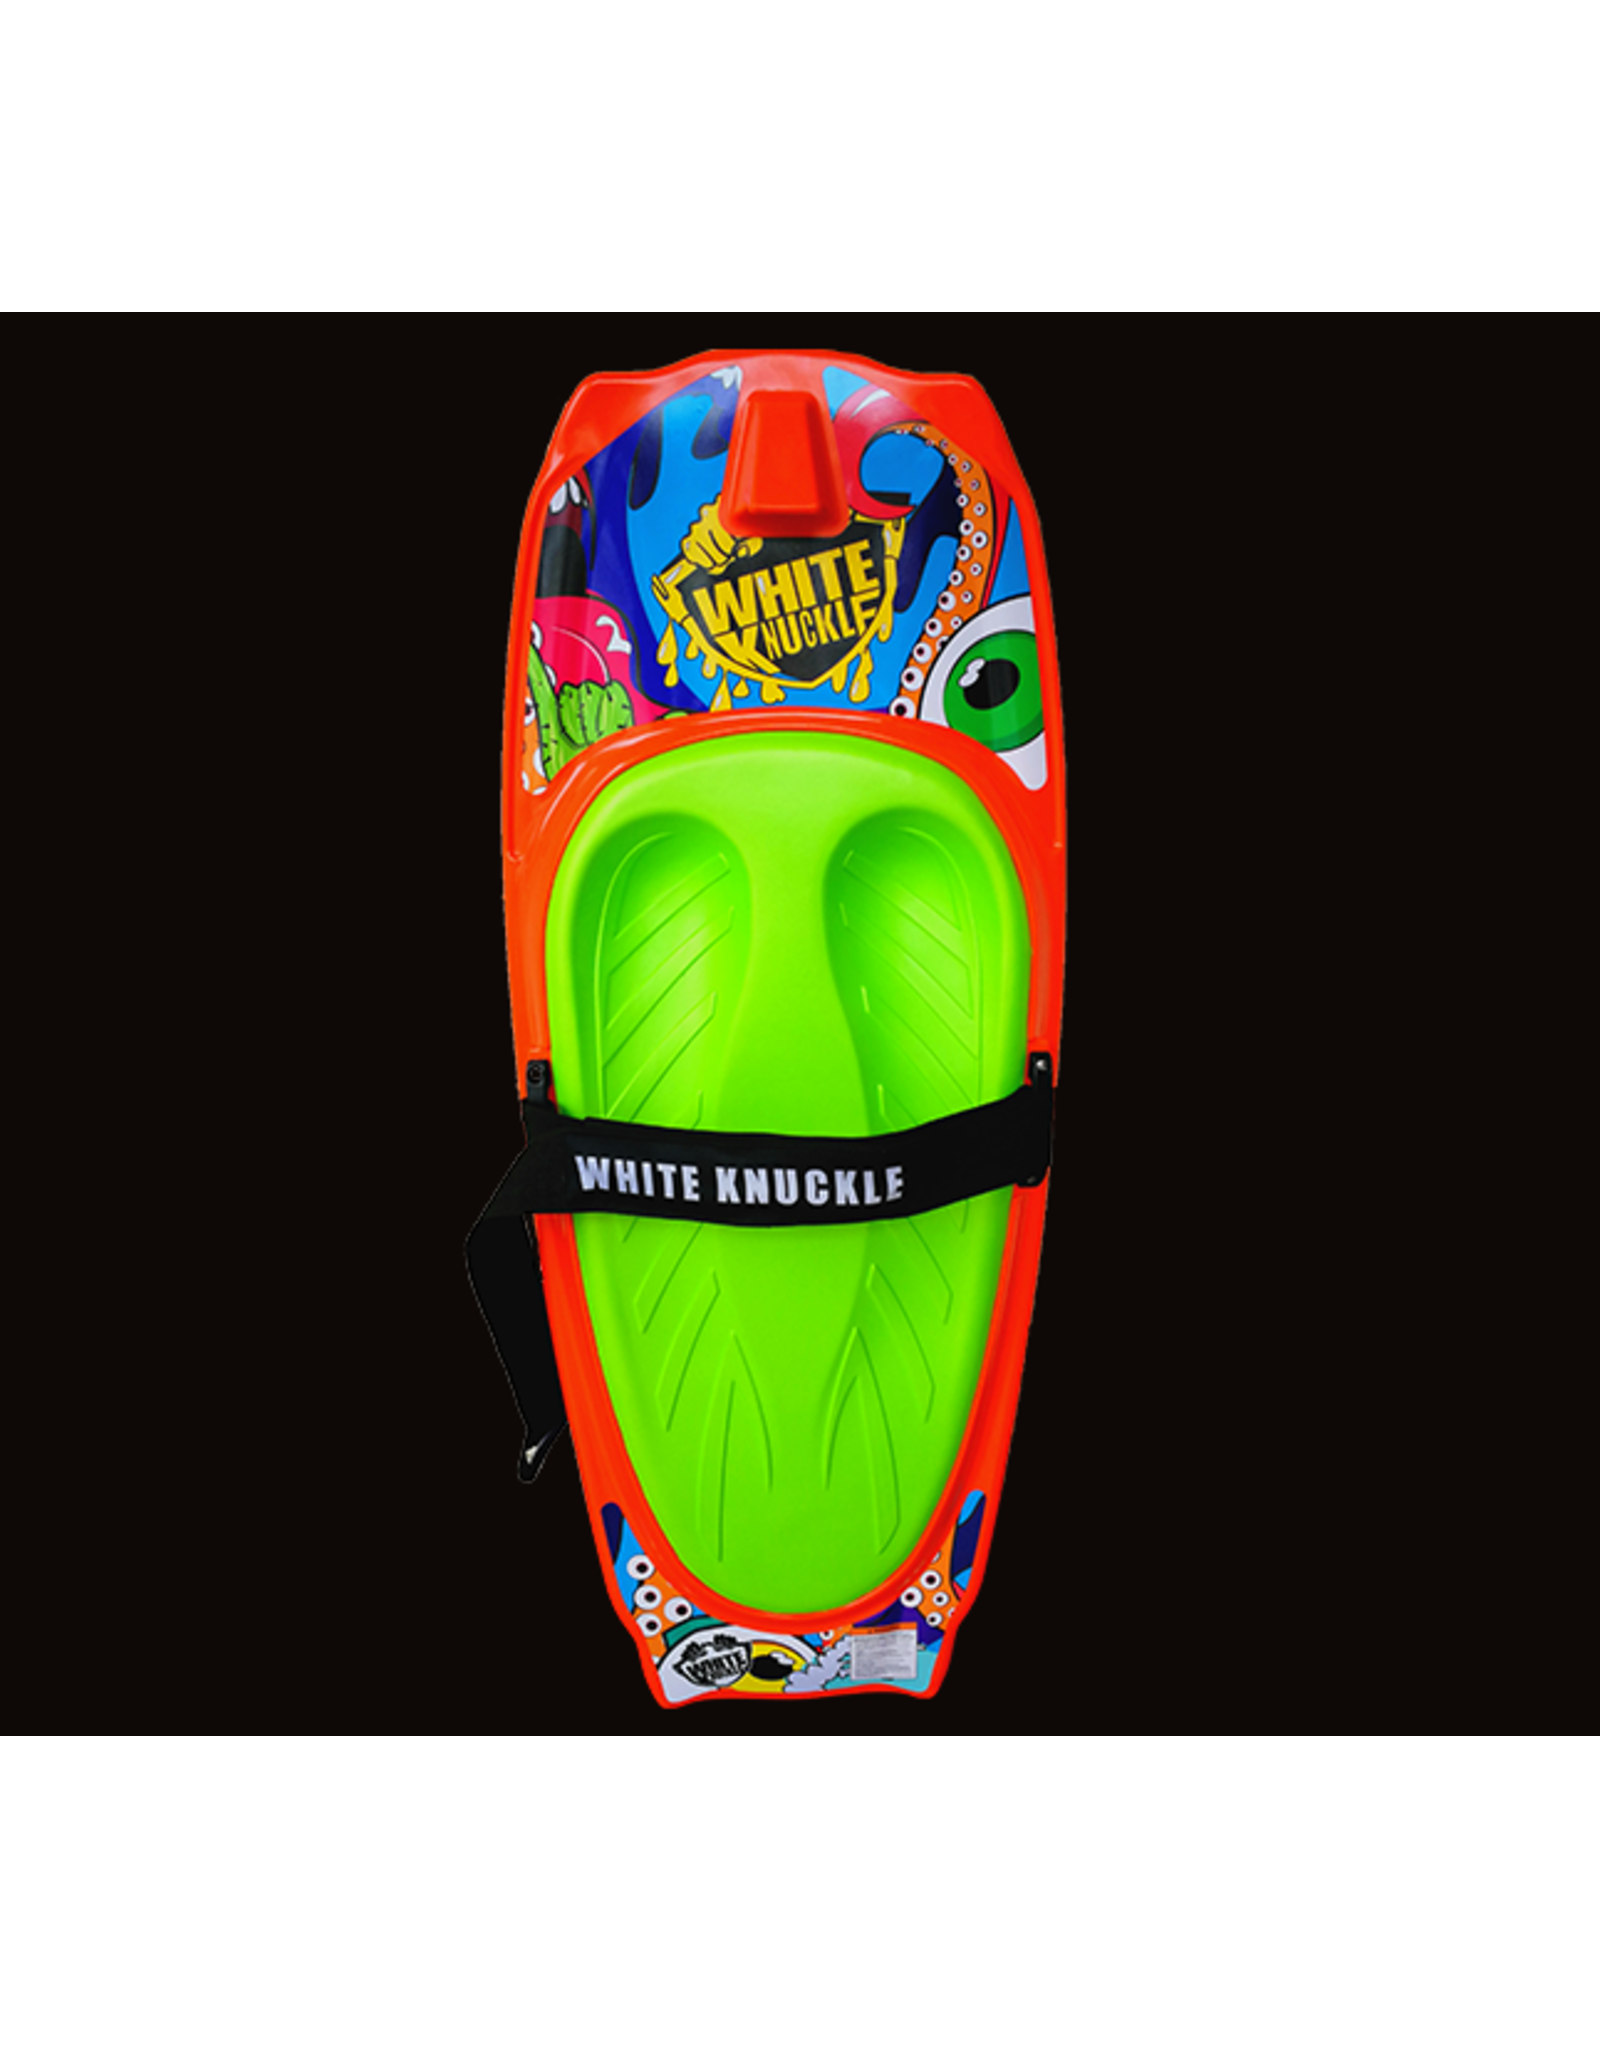 White knuckle WHITE KNUCKLE KNEEBOARD